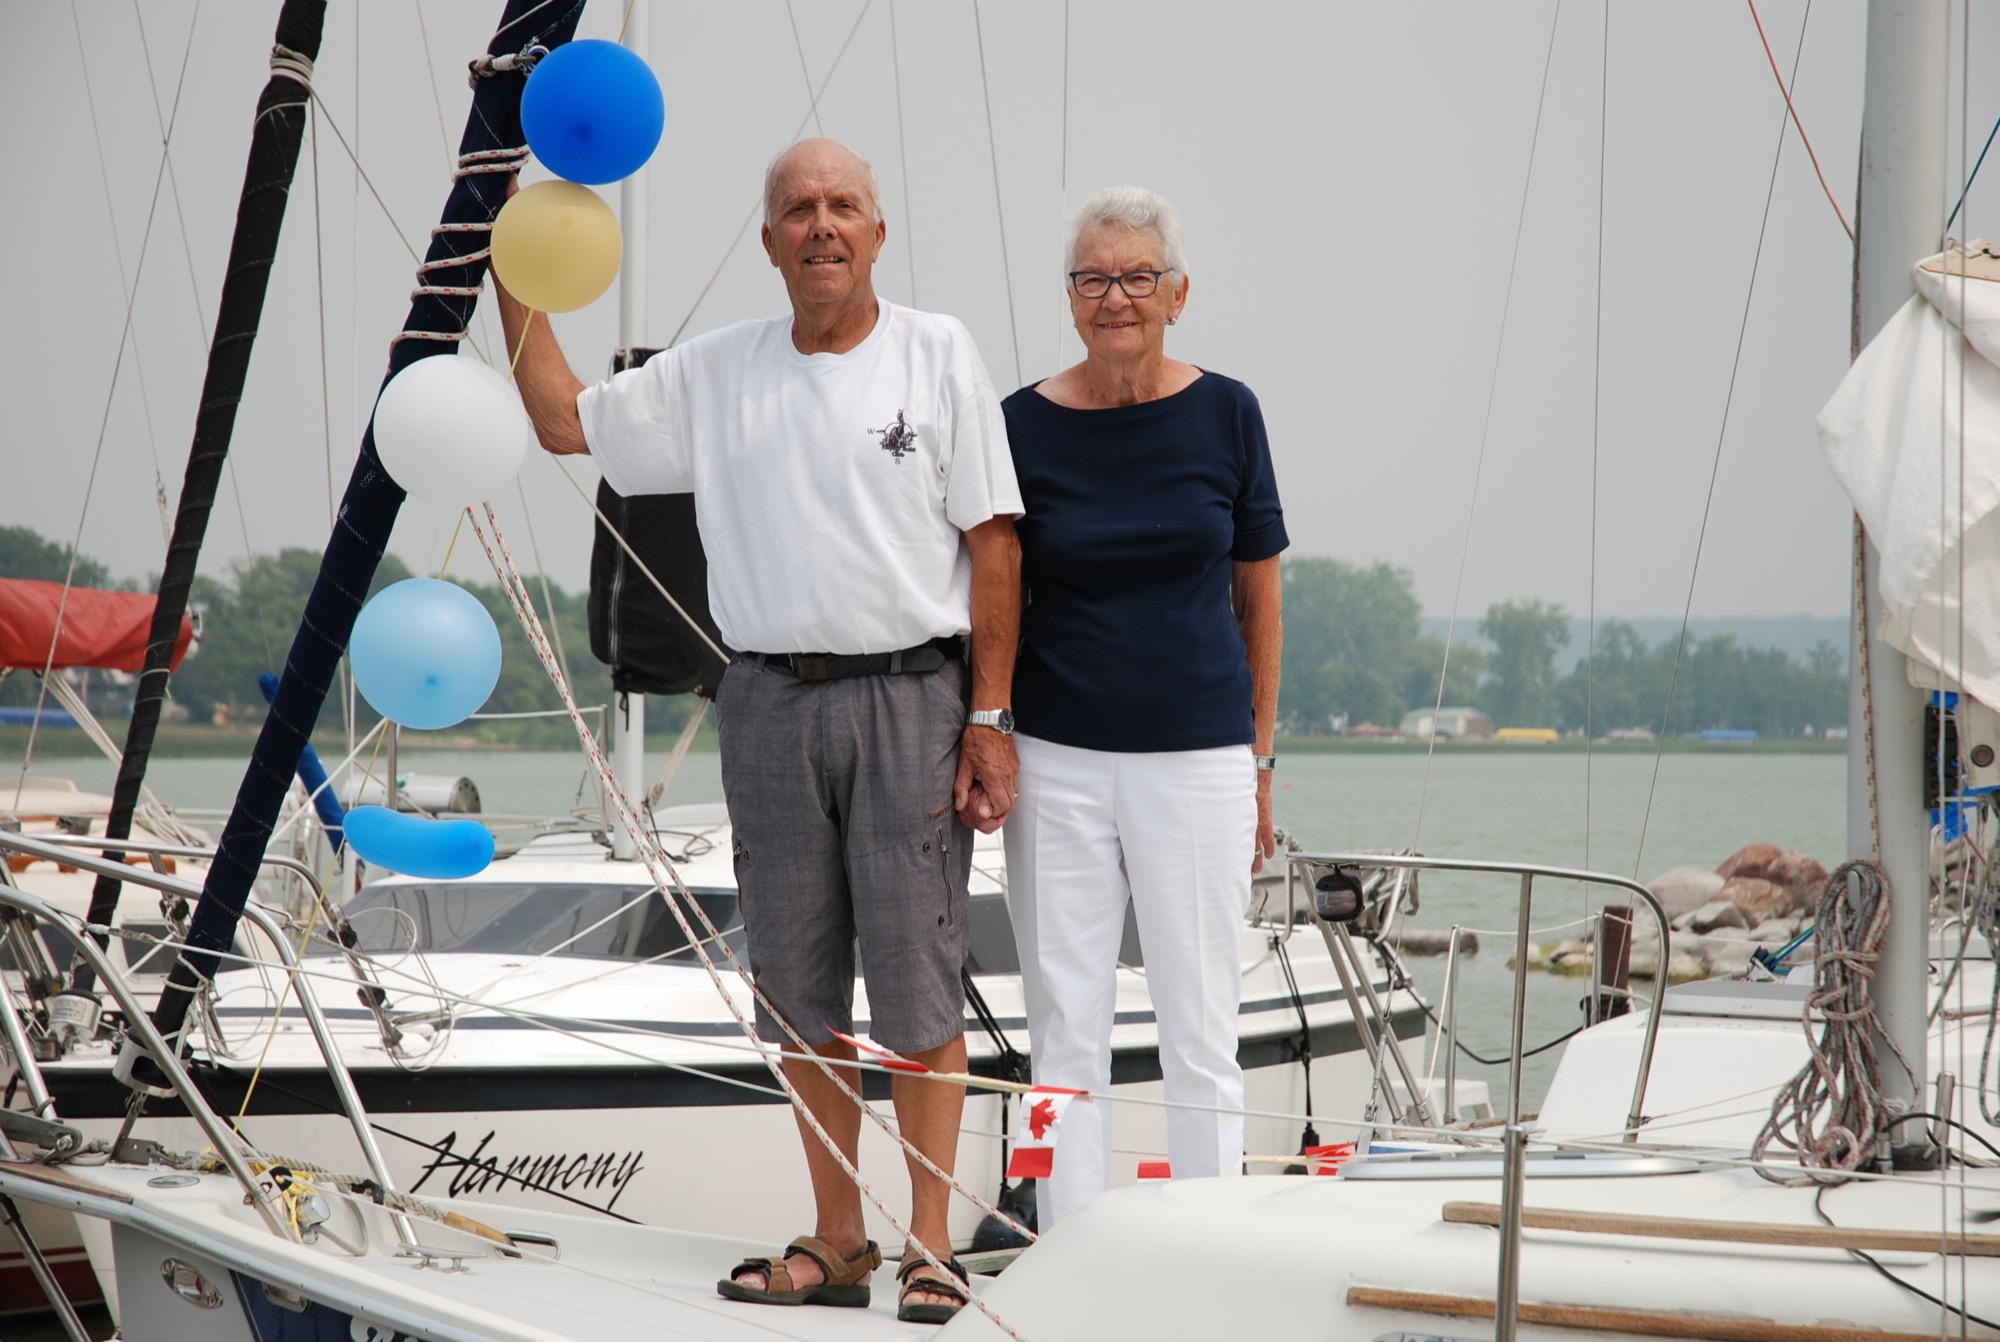 Alf and Betty Iverson stand on the deck of Alfabet, their 25 foot Siren sailboat. The Iverson's have been sailing since the 1990s. The couple has no plan of hanging up Alfabet's sails anytime soon.